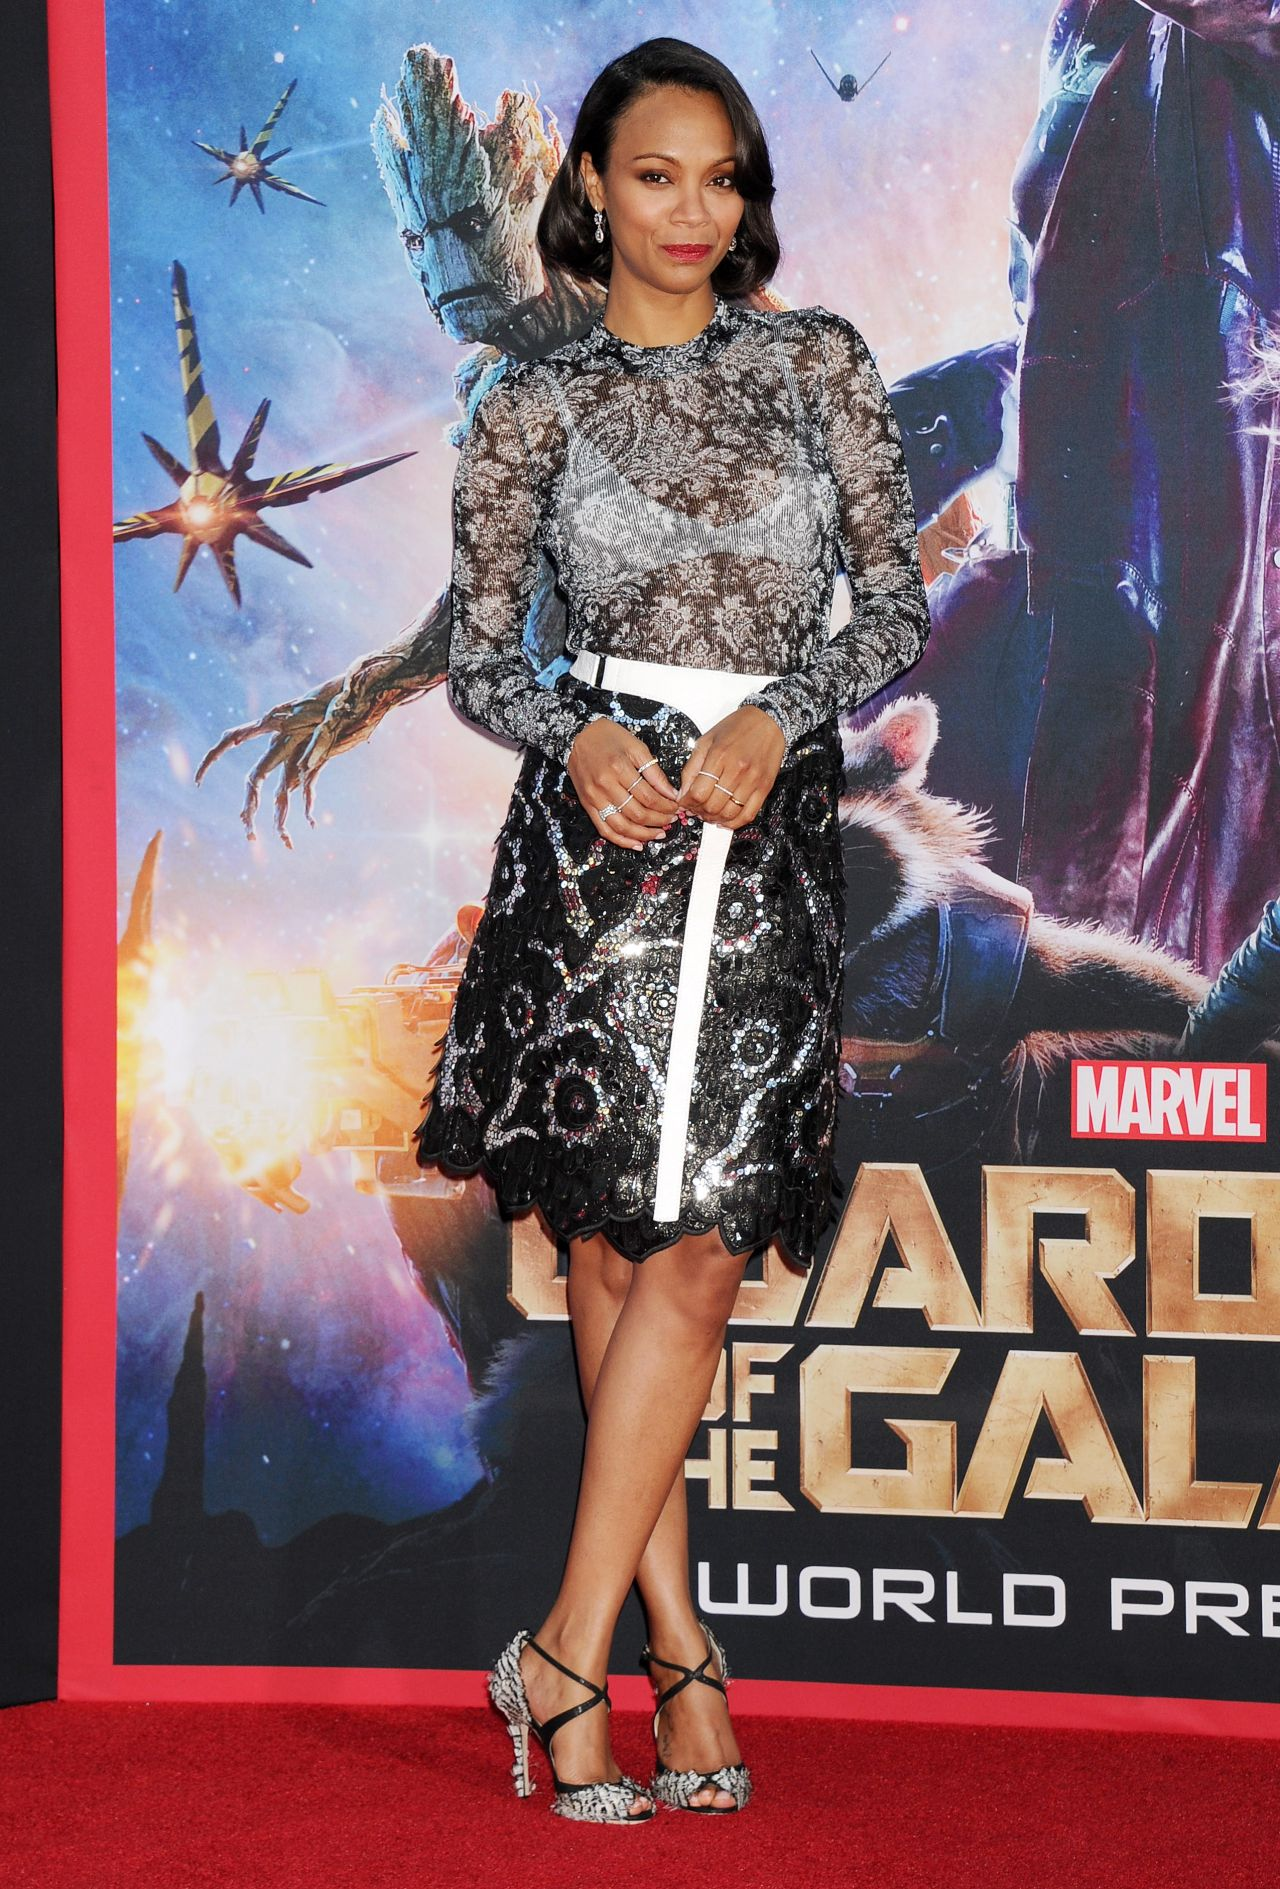 Zoe Saldana at Guardians of the Galaxy premiere www.scifiempire.net